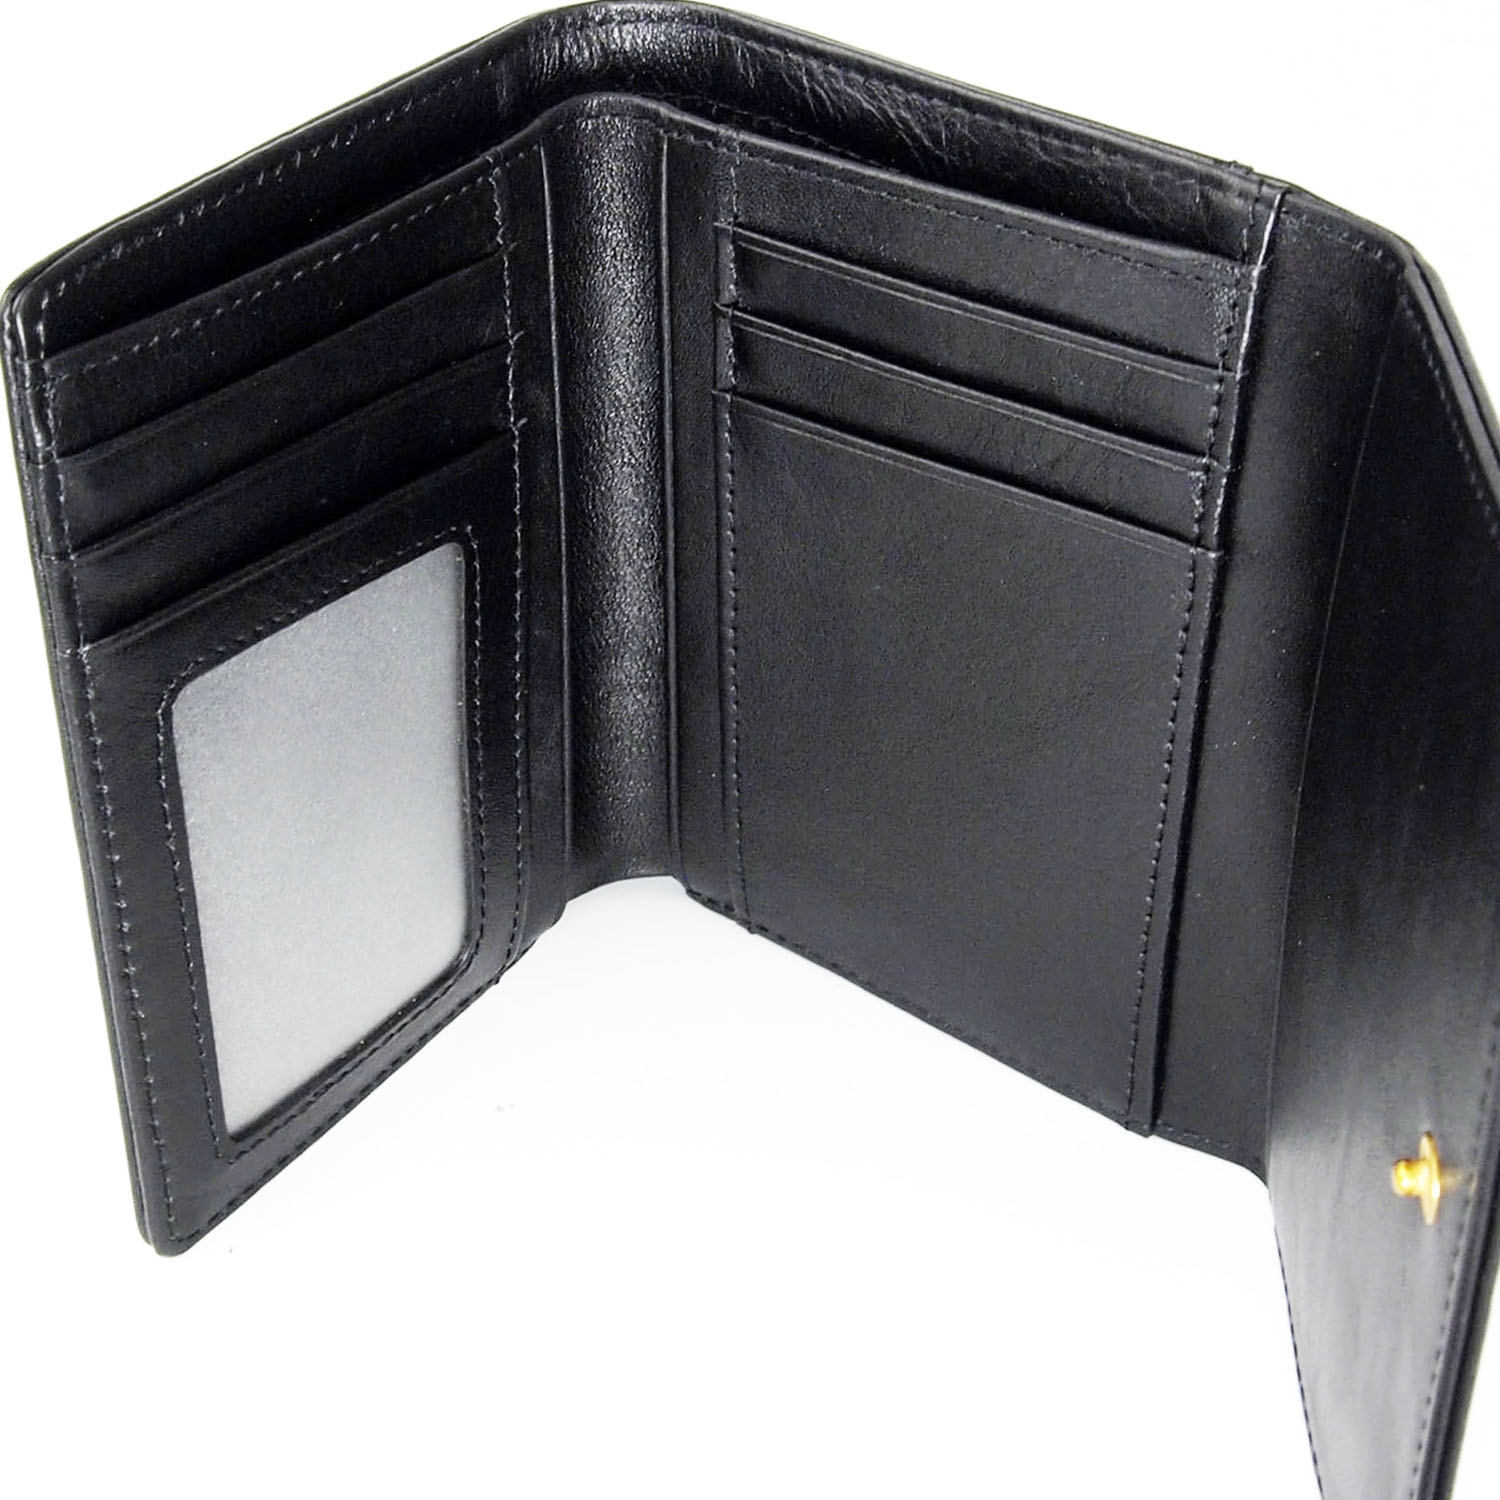 Modern Heritage wies  Wallet  Bottom View